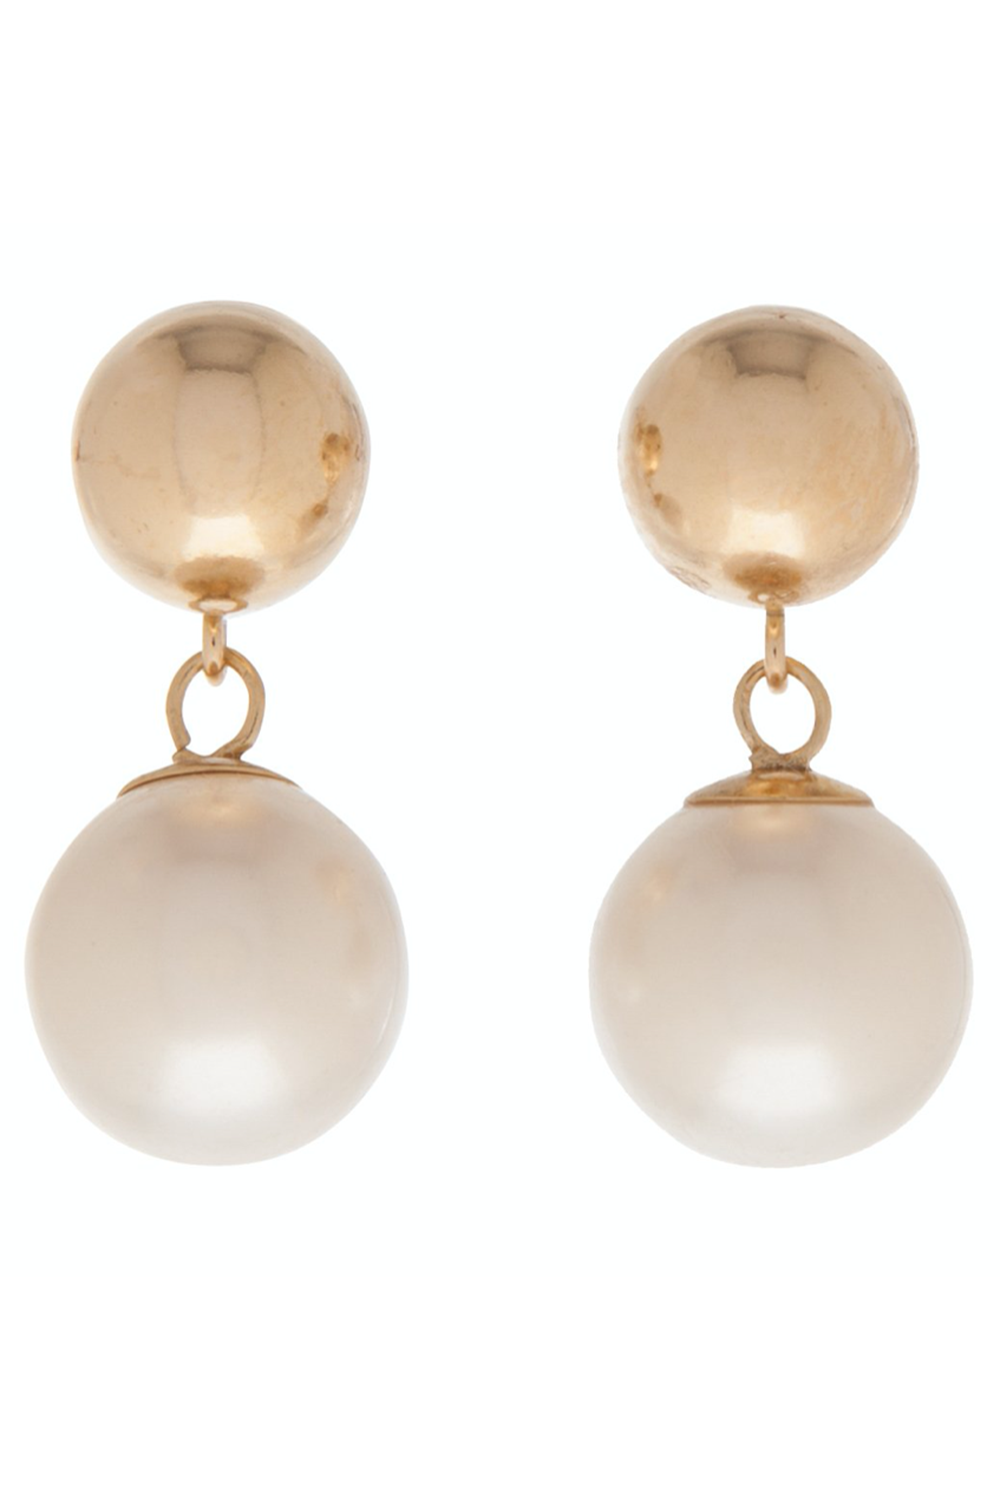 EN Clarity Stud Drop Earring - Gold & Pearl